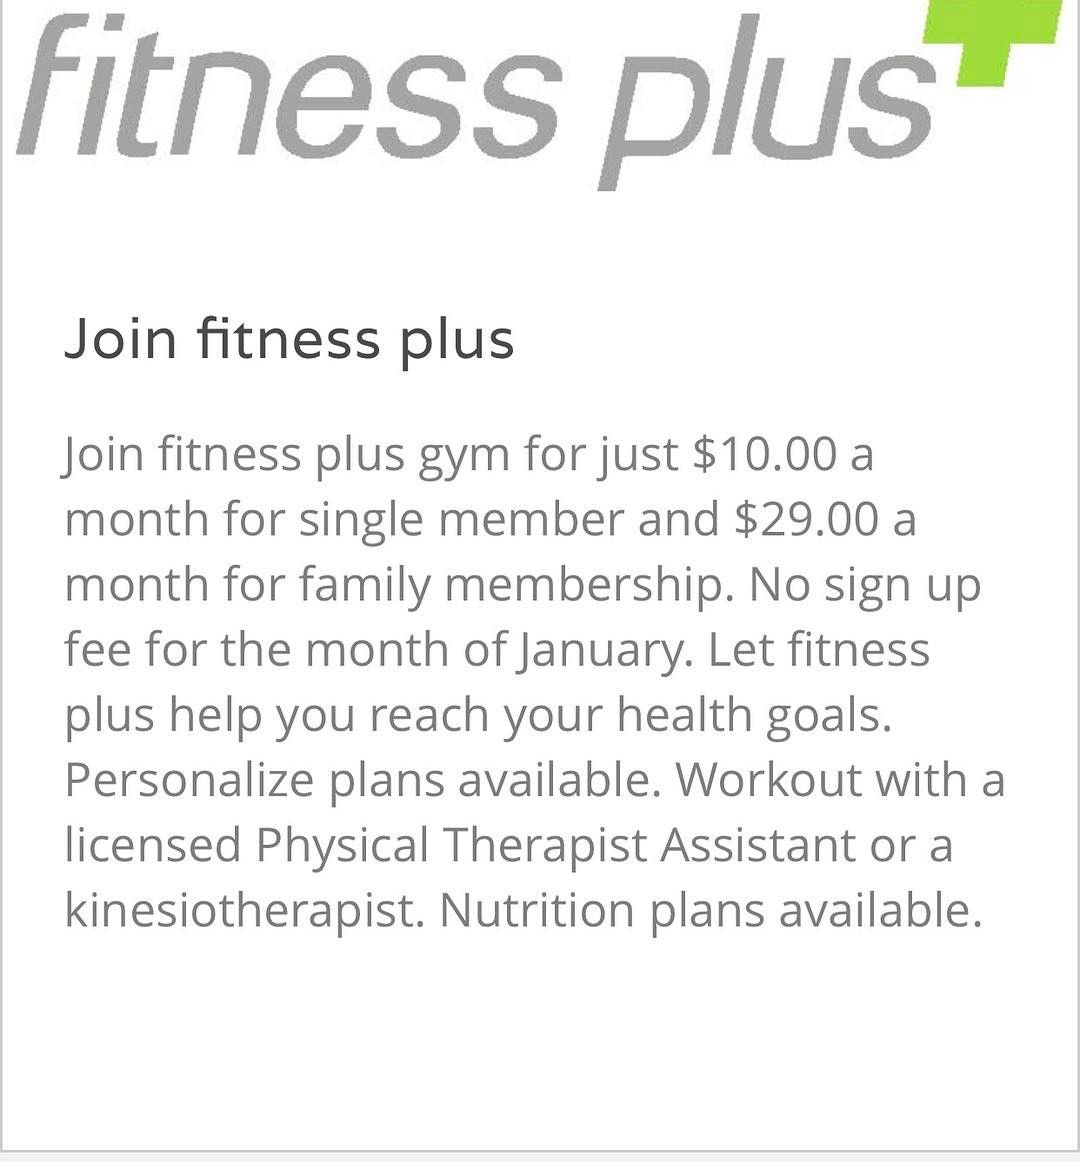 weare757 #phoebus #gym #personaltrainers #757personaltrainers #virginia #757fitnesscenters #Fitnessplus #runners #physicaltherapy #pta #occupationaltherapy #hampton #hamptonroads#newportnews #fitfam #fitness#gymtime#gainz